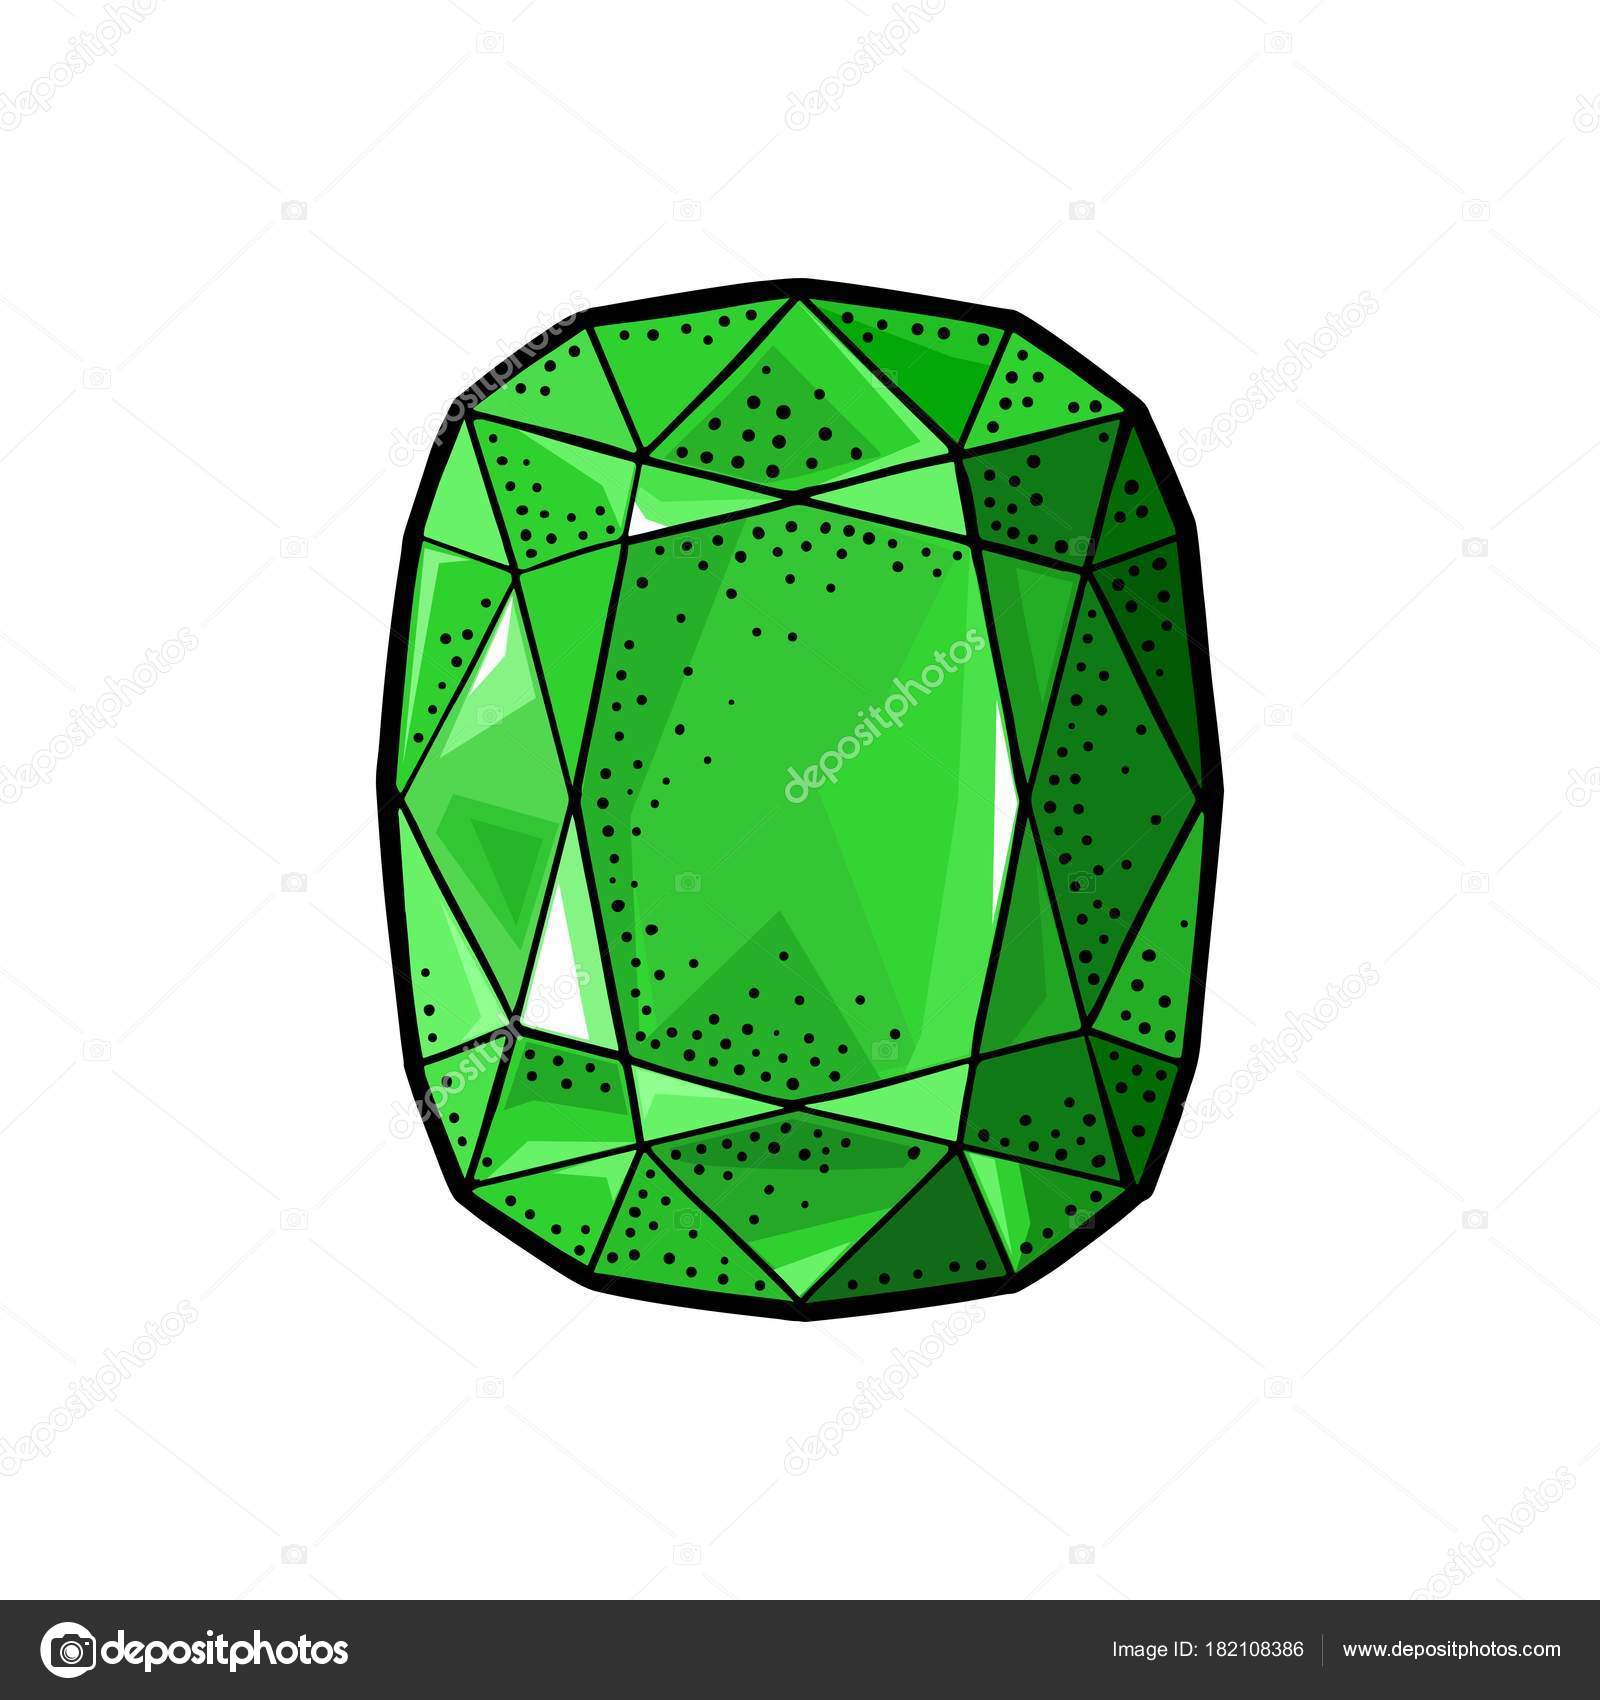 shiny vector hd royalty sign free emerald image stock green precious heart stone